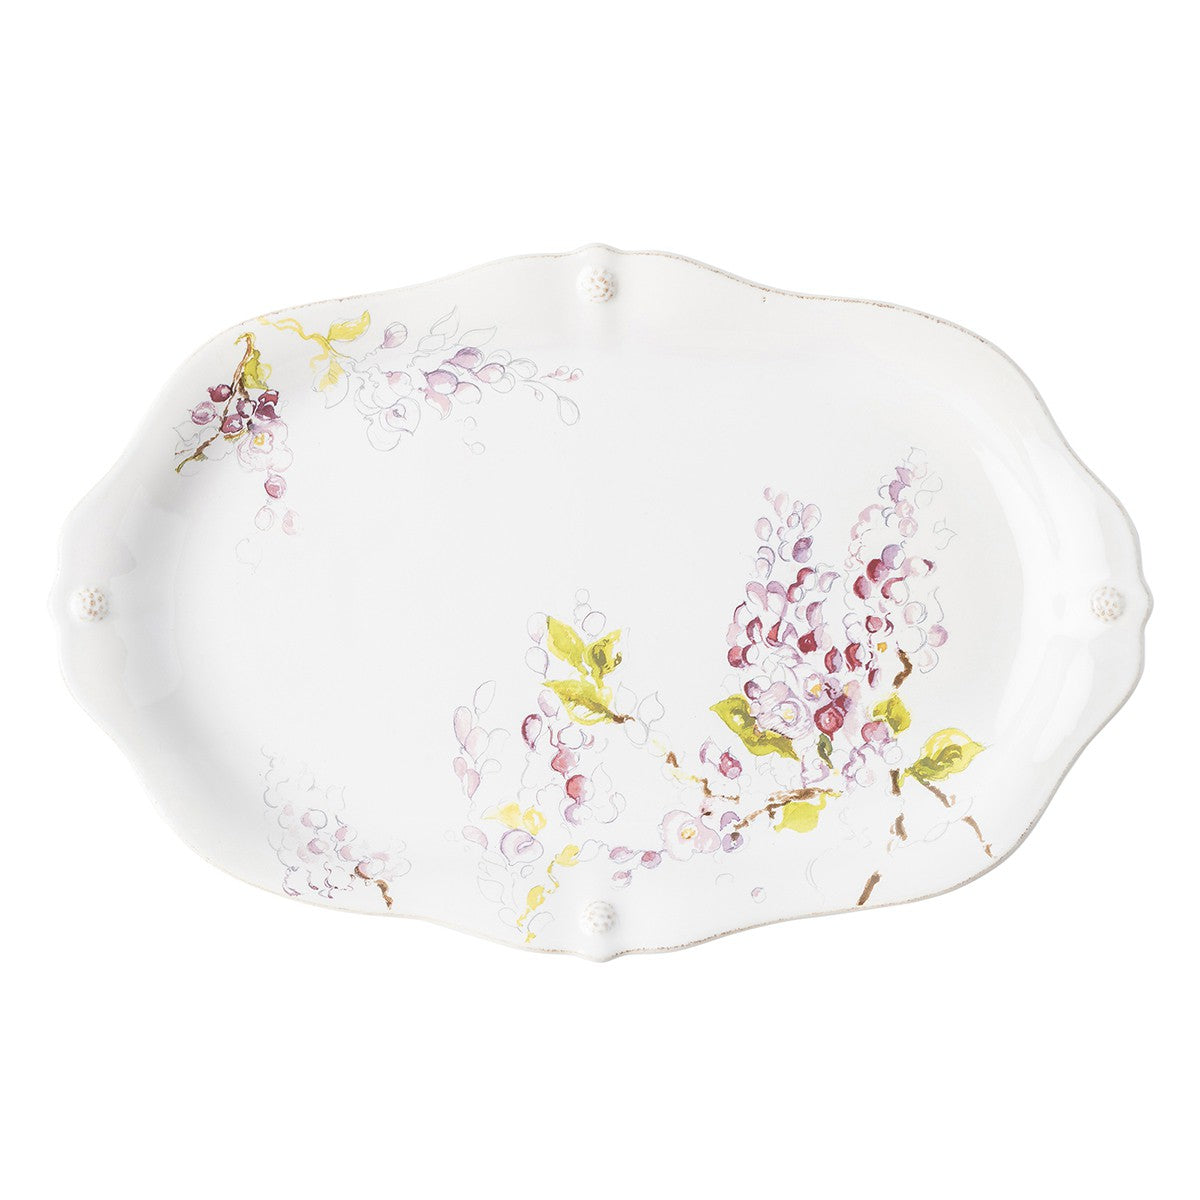 "Berry & Thread Floral Sketch Wisteria 16"" Platter"